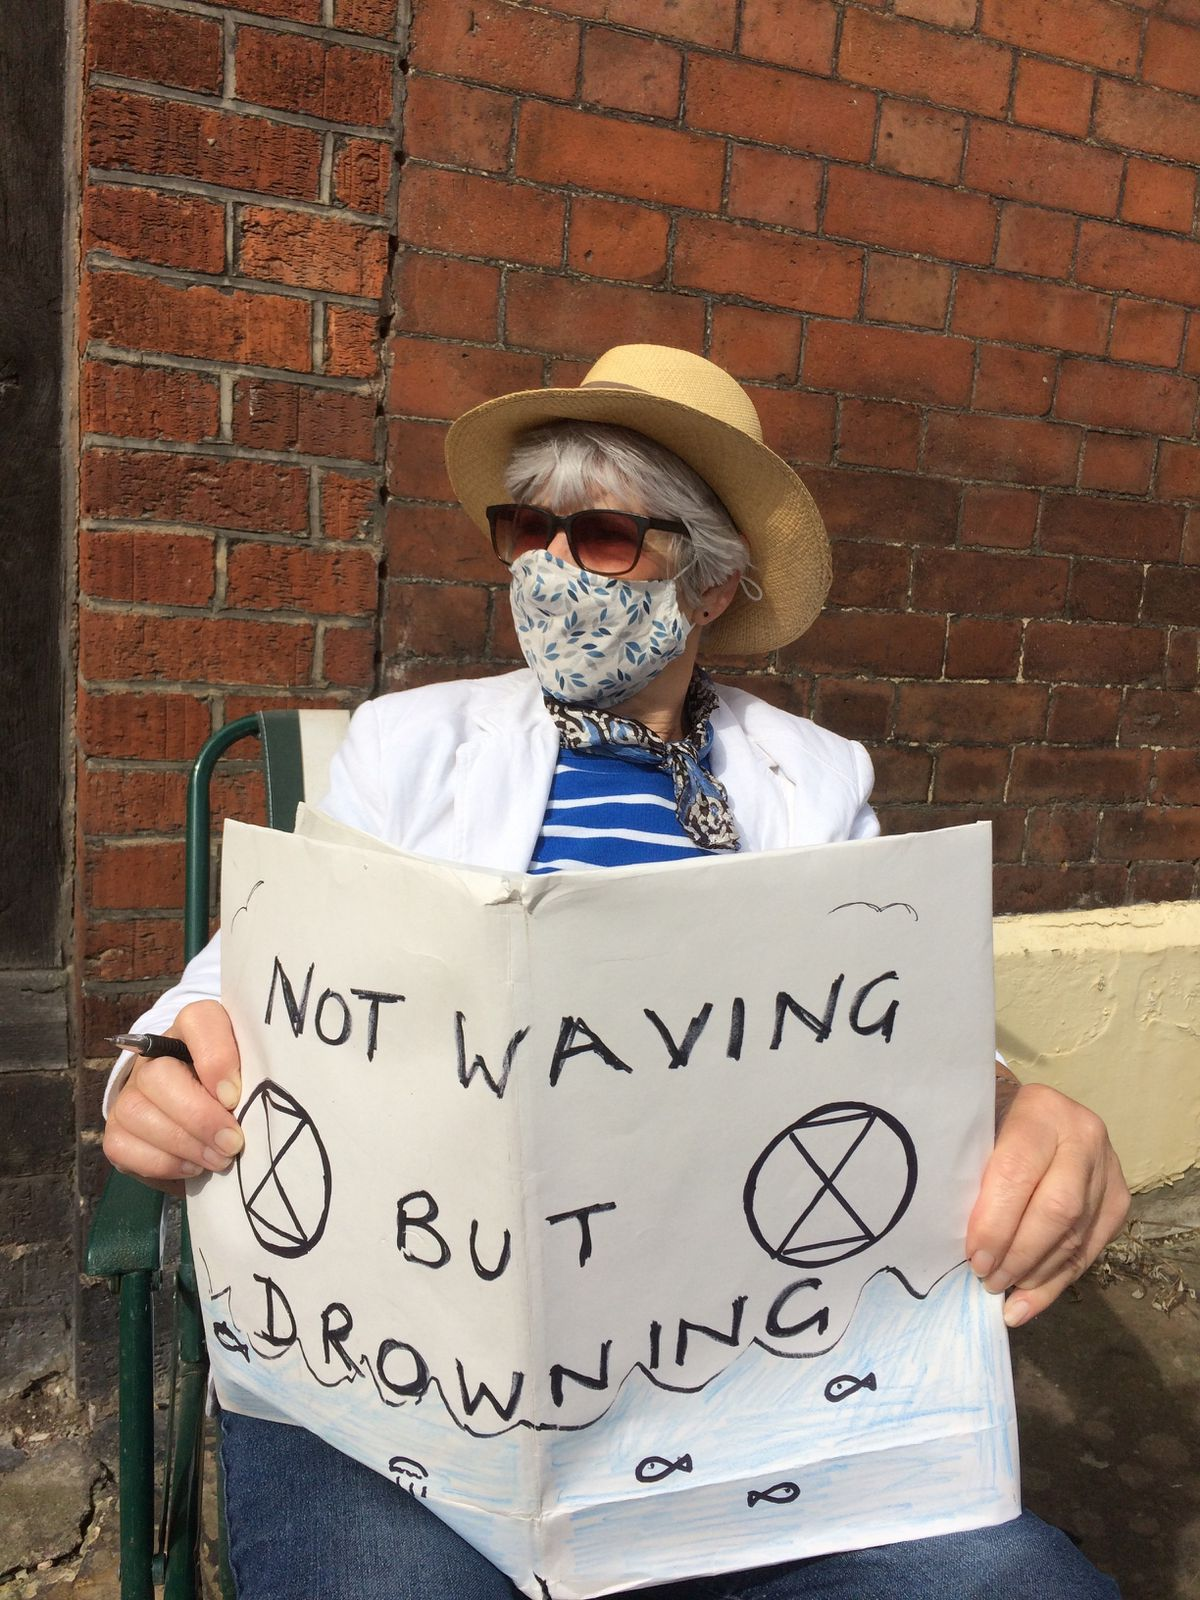 The protest in Ludlow